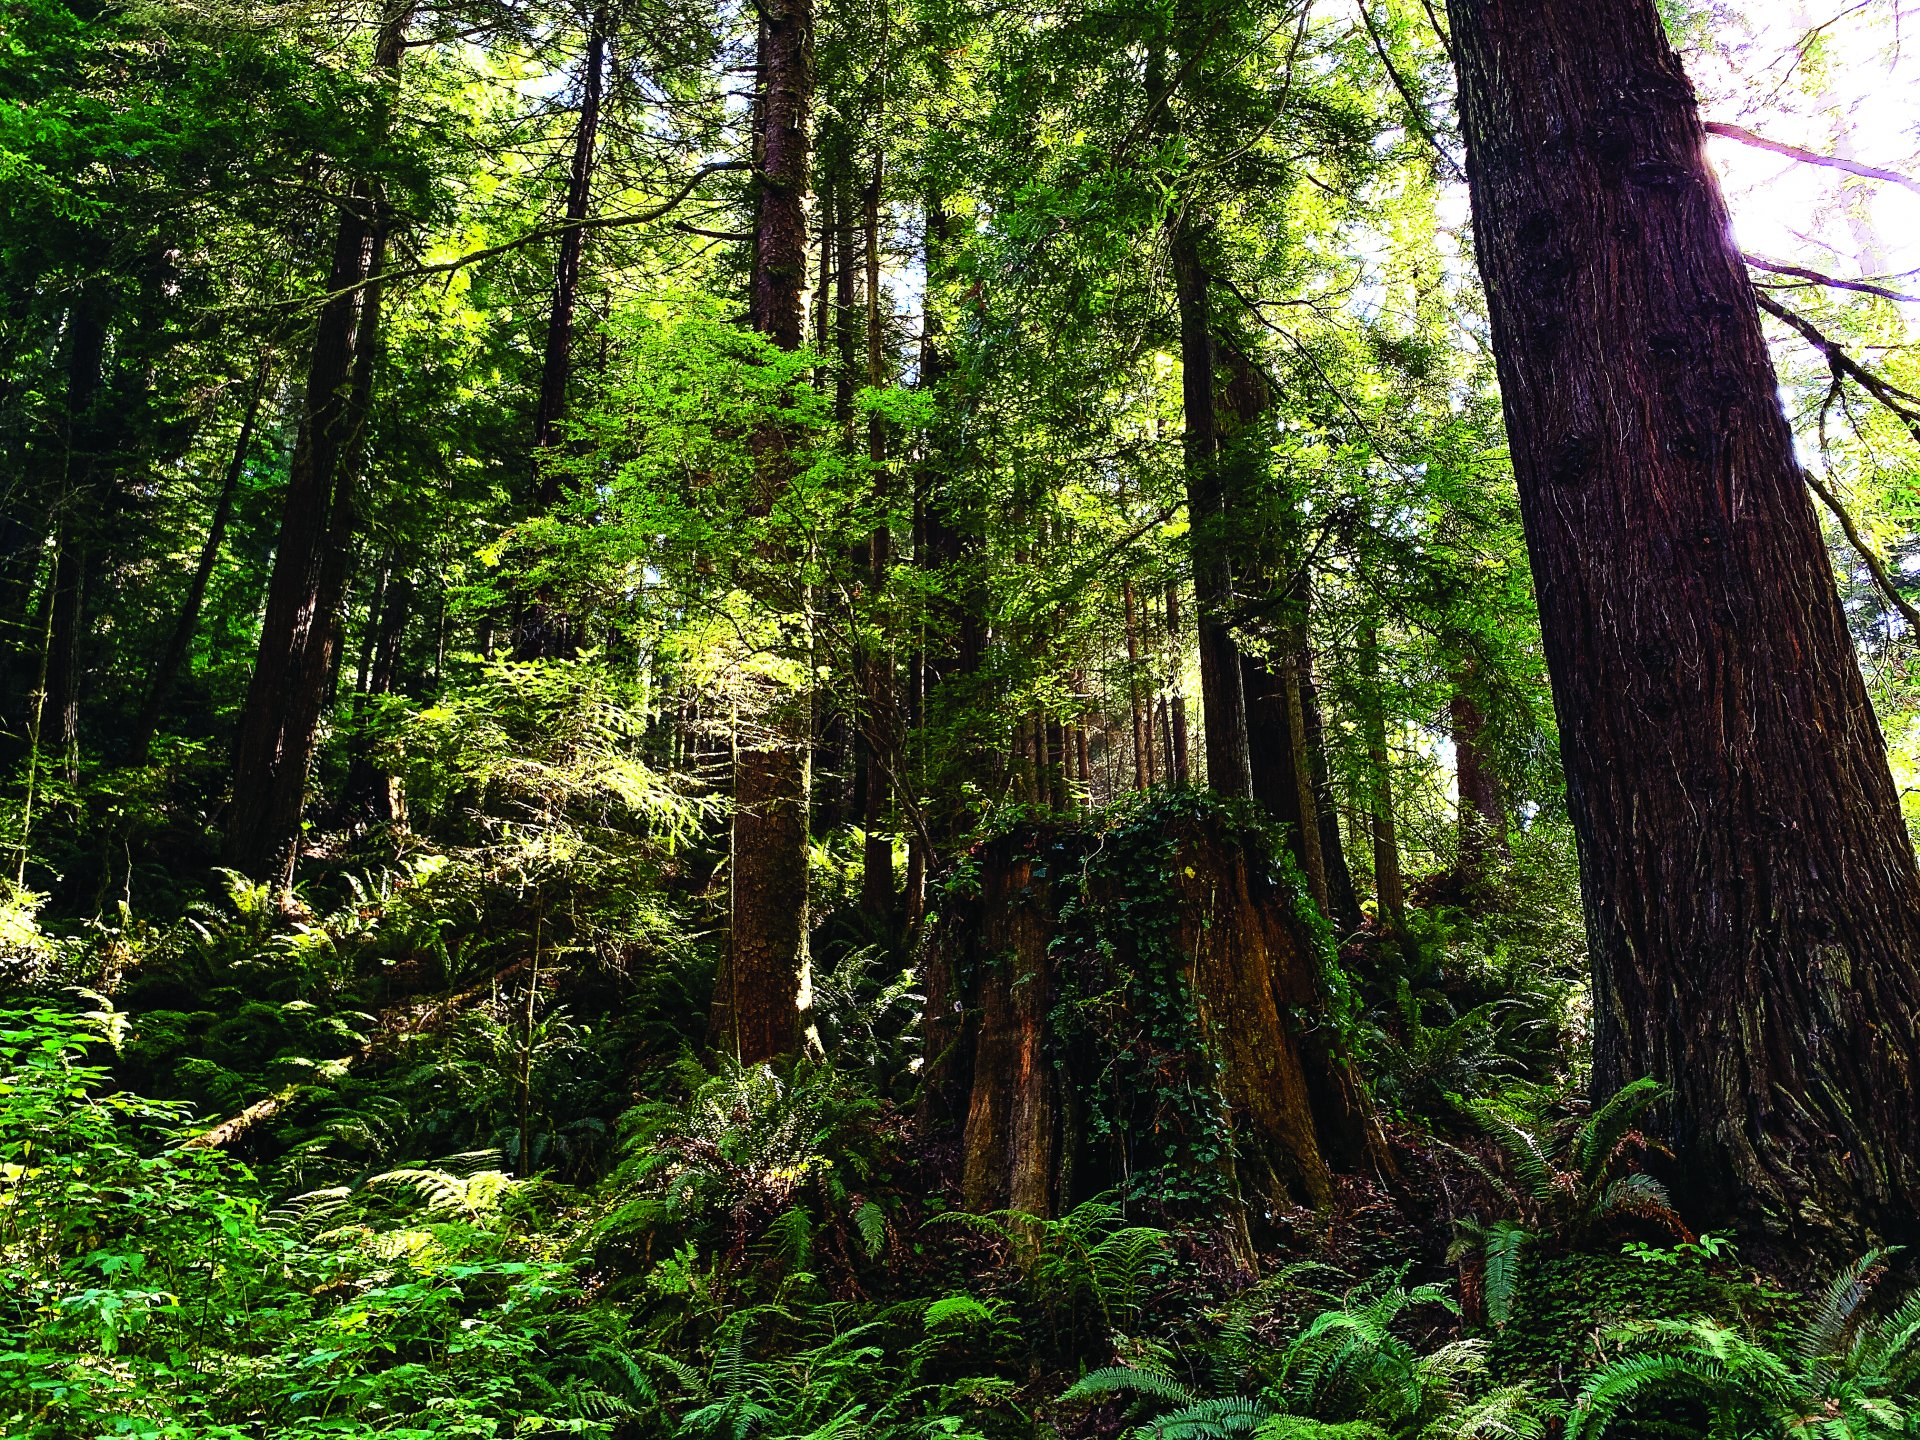 Redwood trees in the forest behind Humboldt State University on Sept. 2. | Photo by Elise Fero